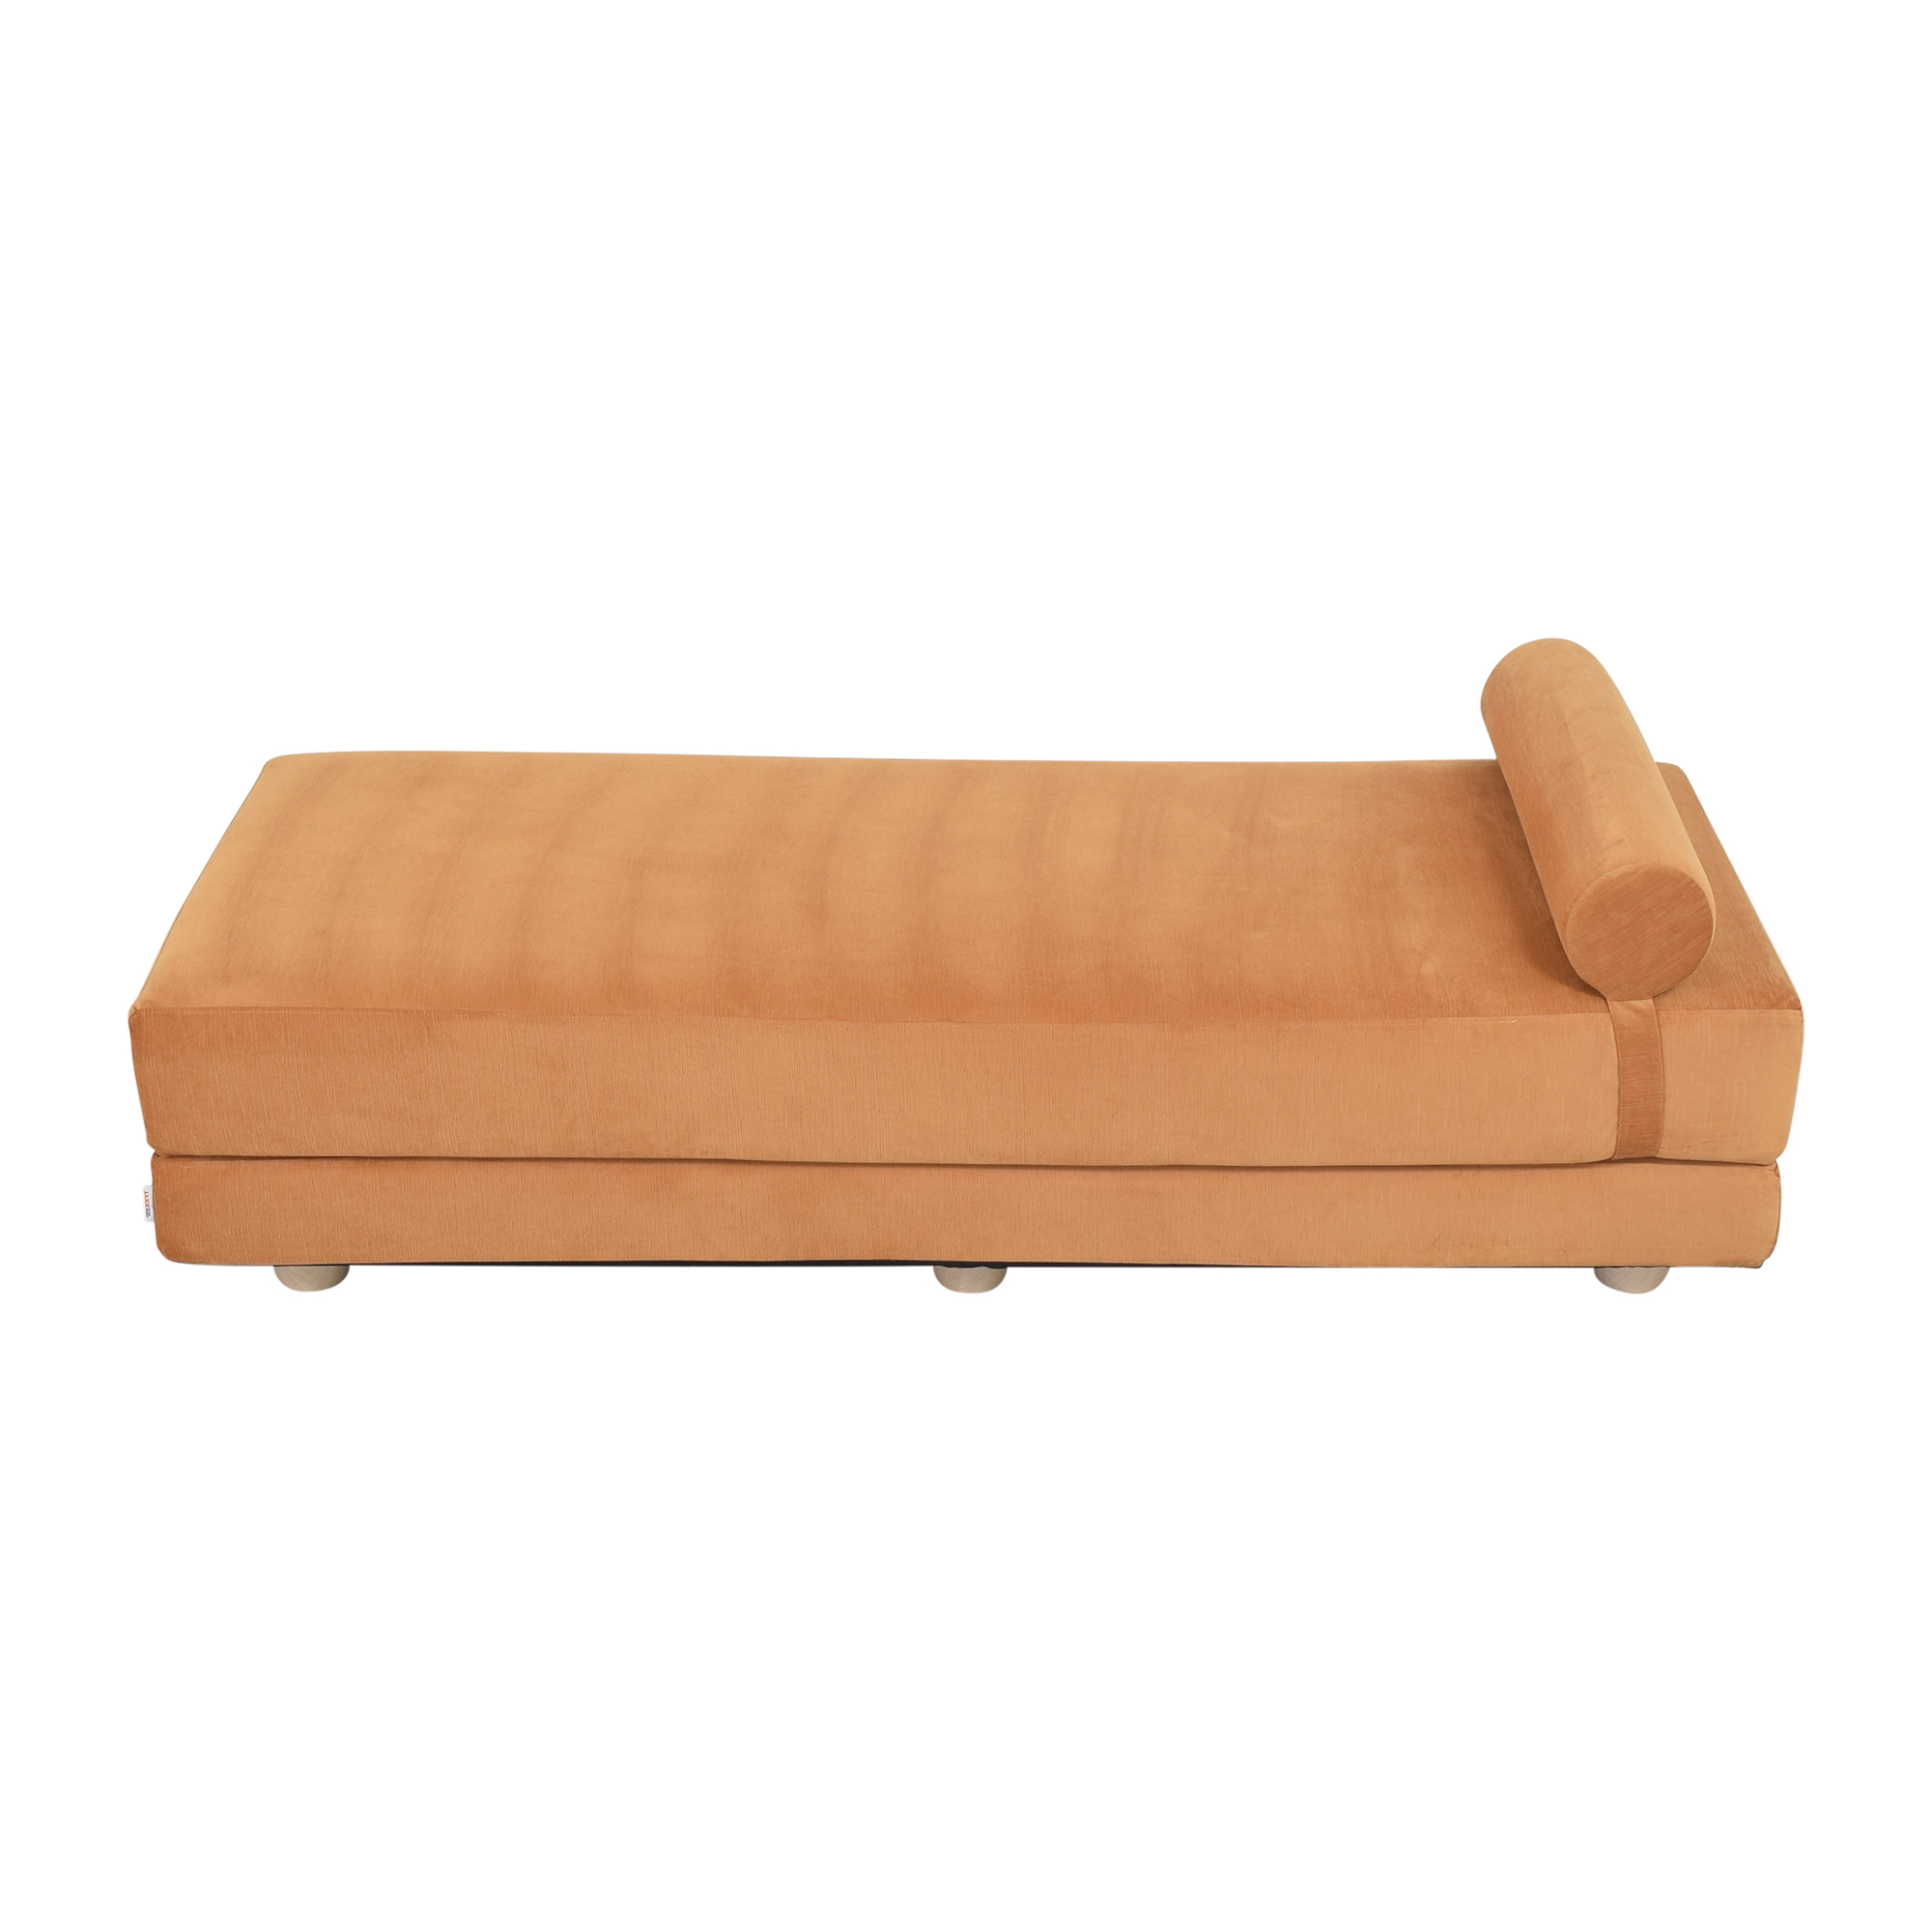 Overstock Overstock Jaxx Artemis Daybed Convertible Sleeper orange